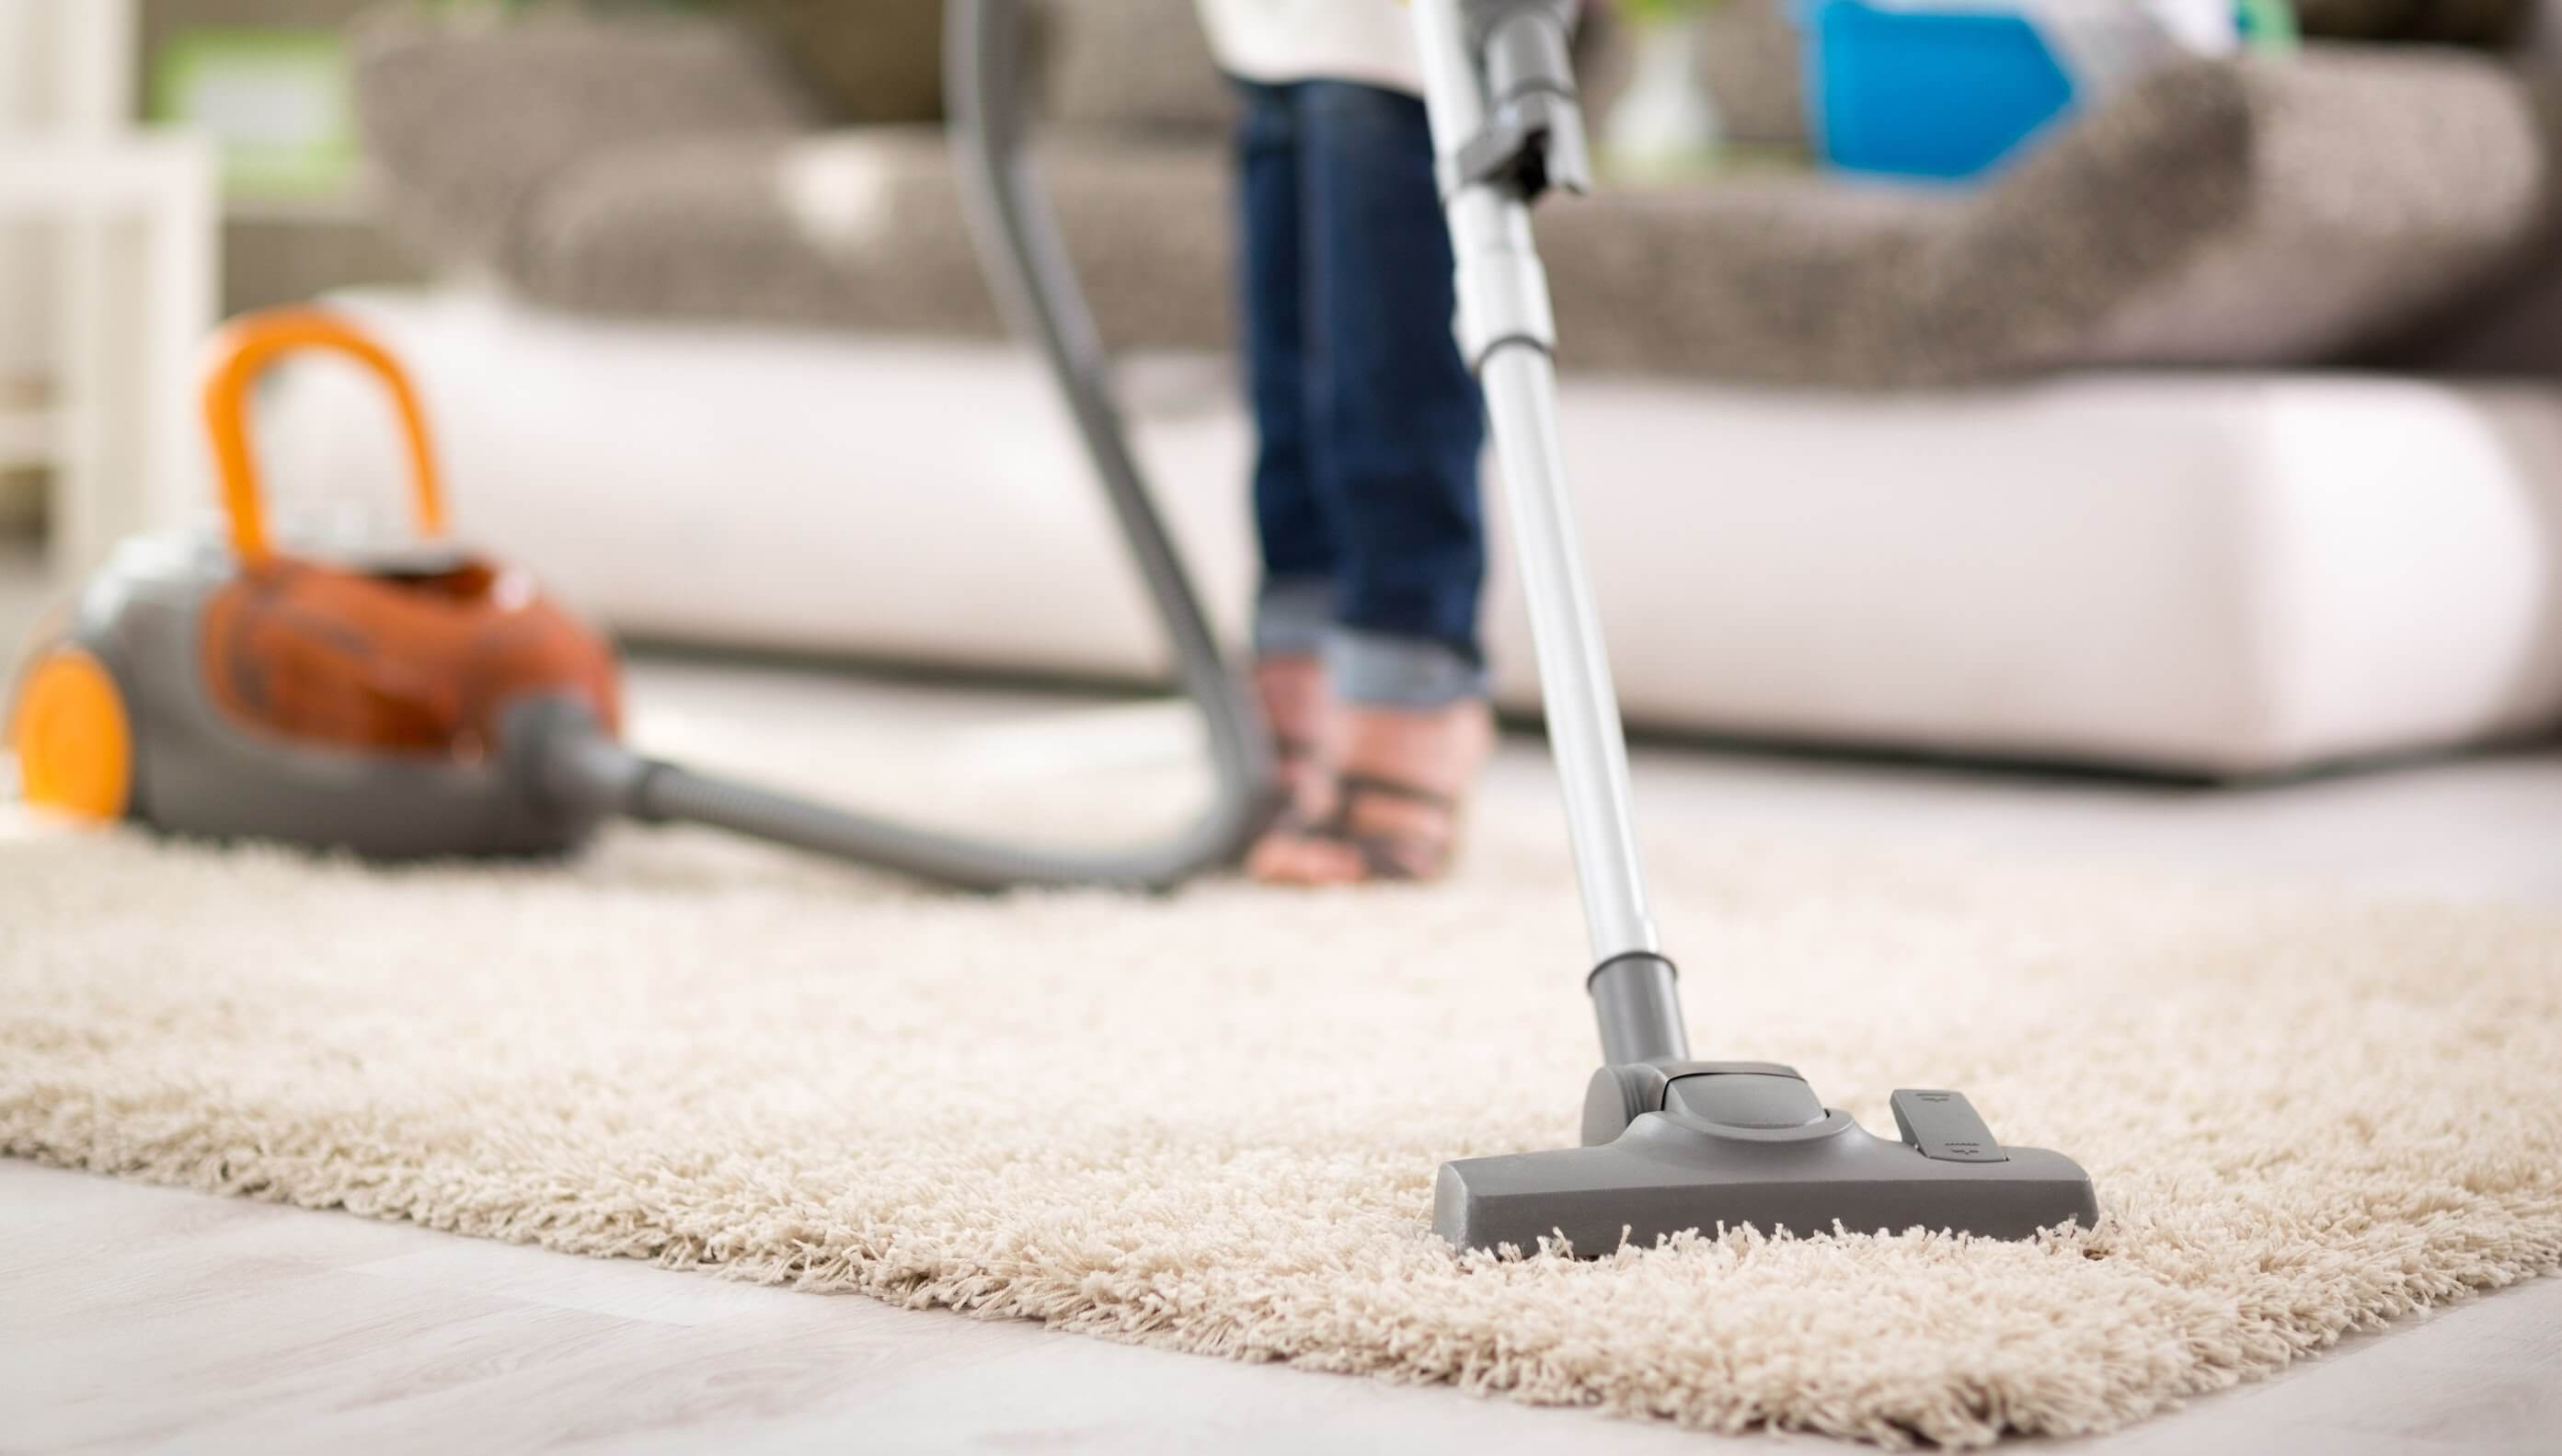 The Best Technique for Vacuuming Floors